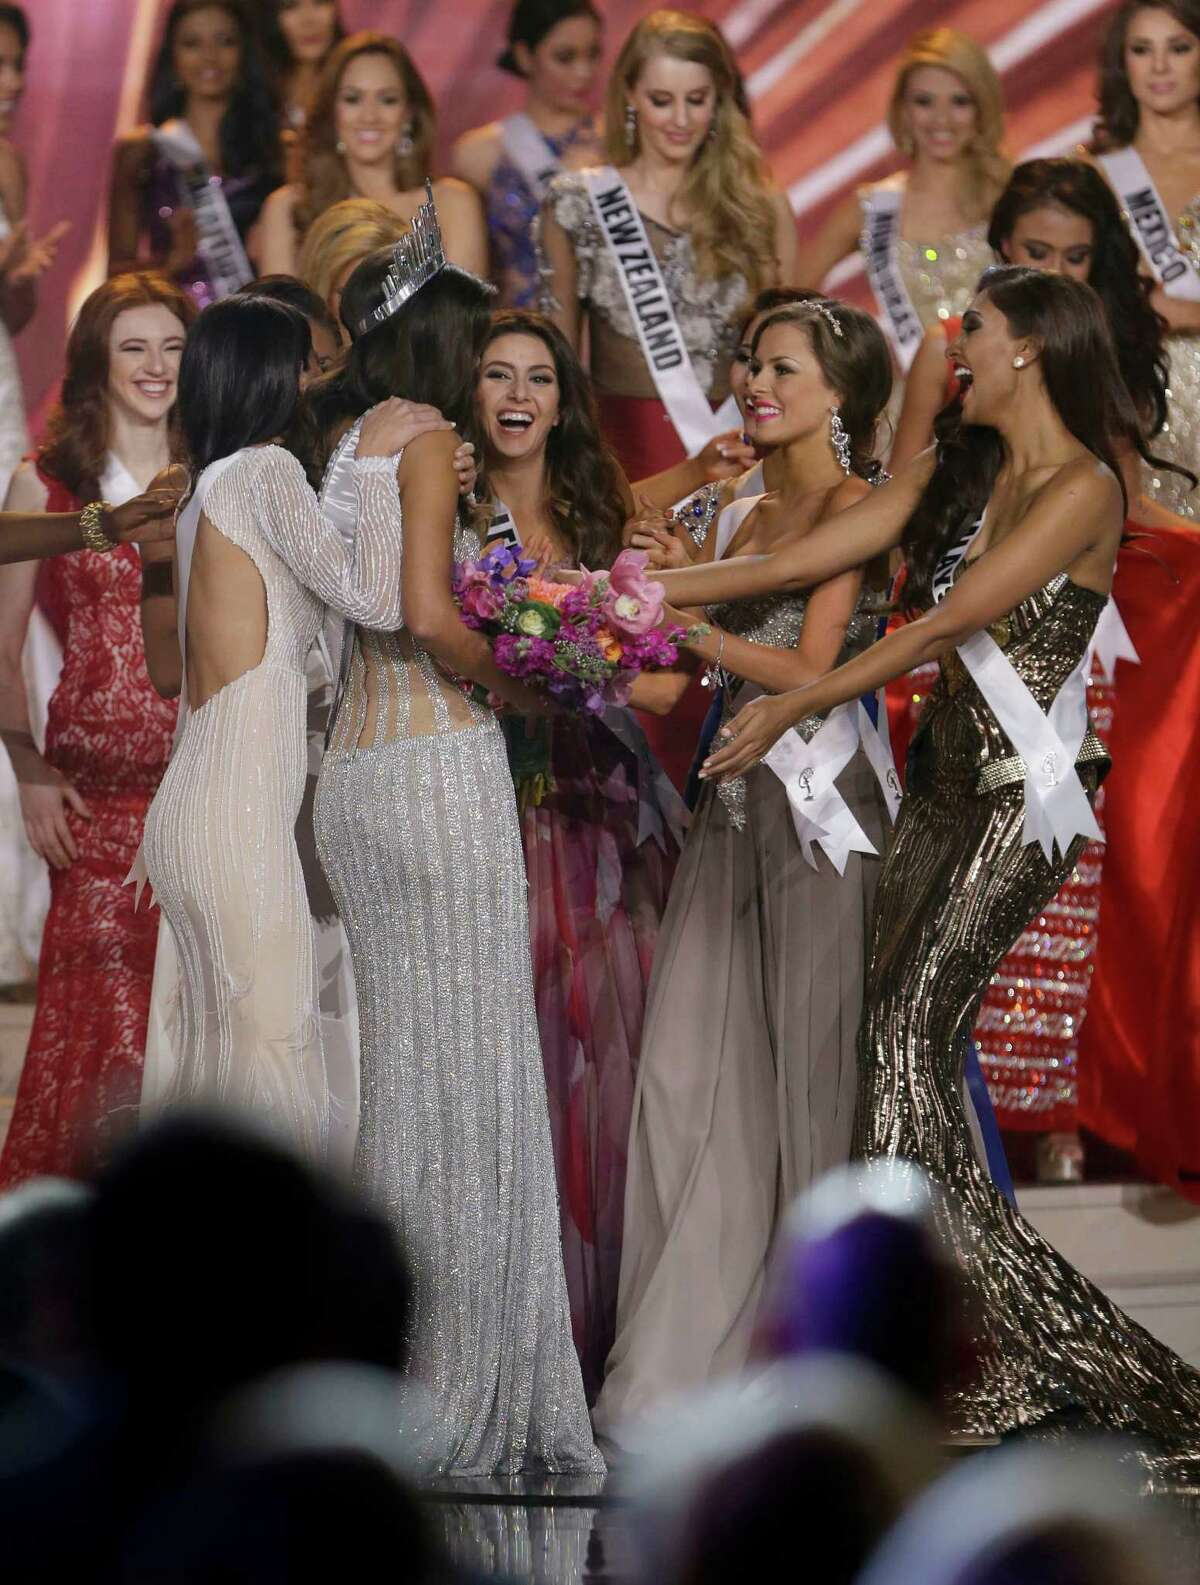 Miss Colombia Paulina Vega is congratulated by contestants after becoming Miss Universe at the Miss Universe pageant in Miami, Sunday, Jan. 25, 2015.